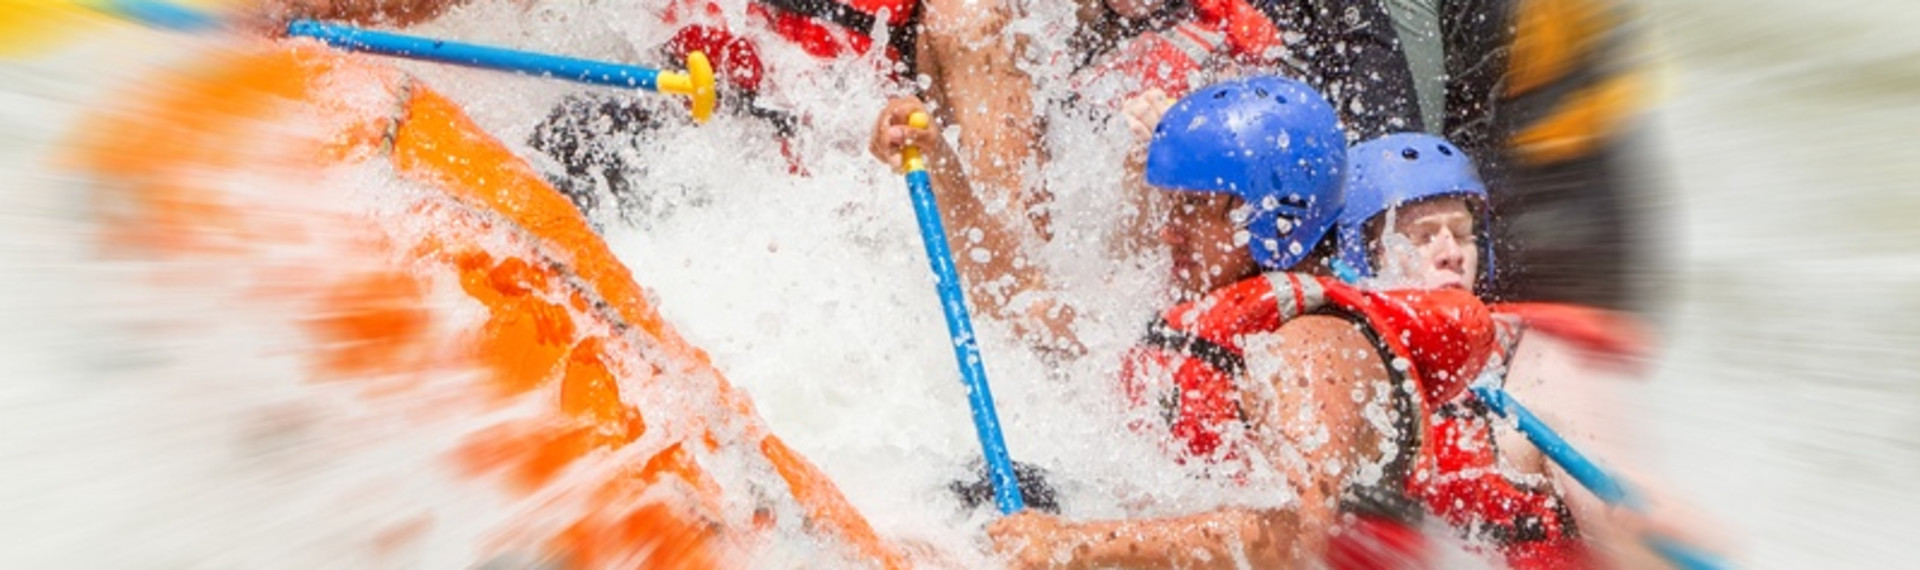 Cracovie Rafting image